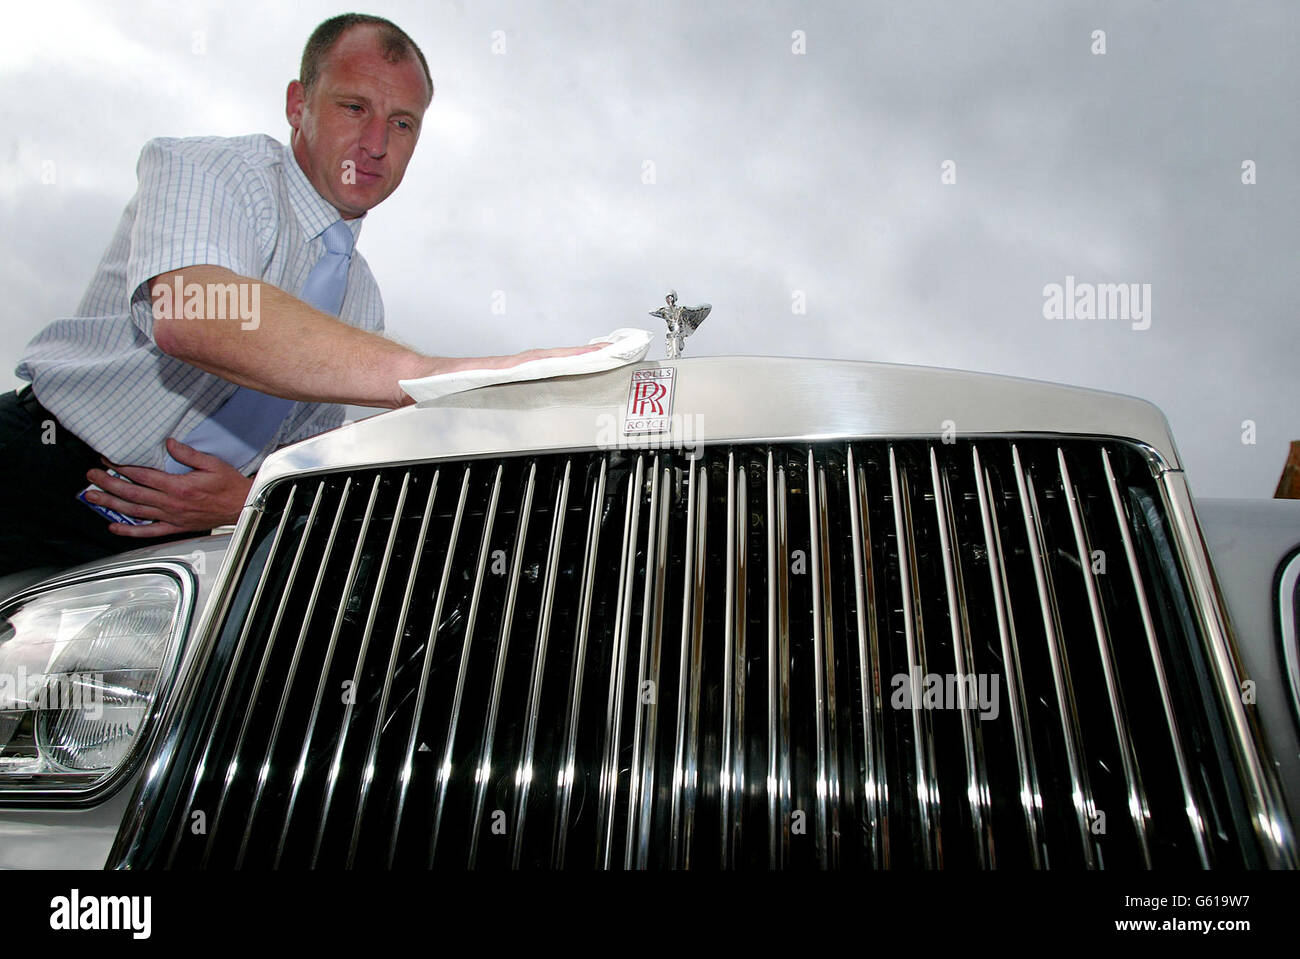 Rolls Royce factory closes - Stock Image